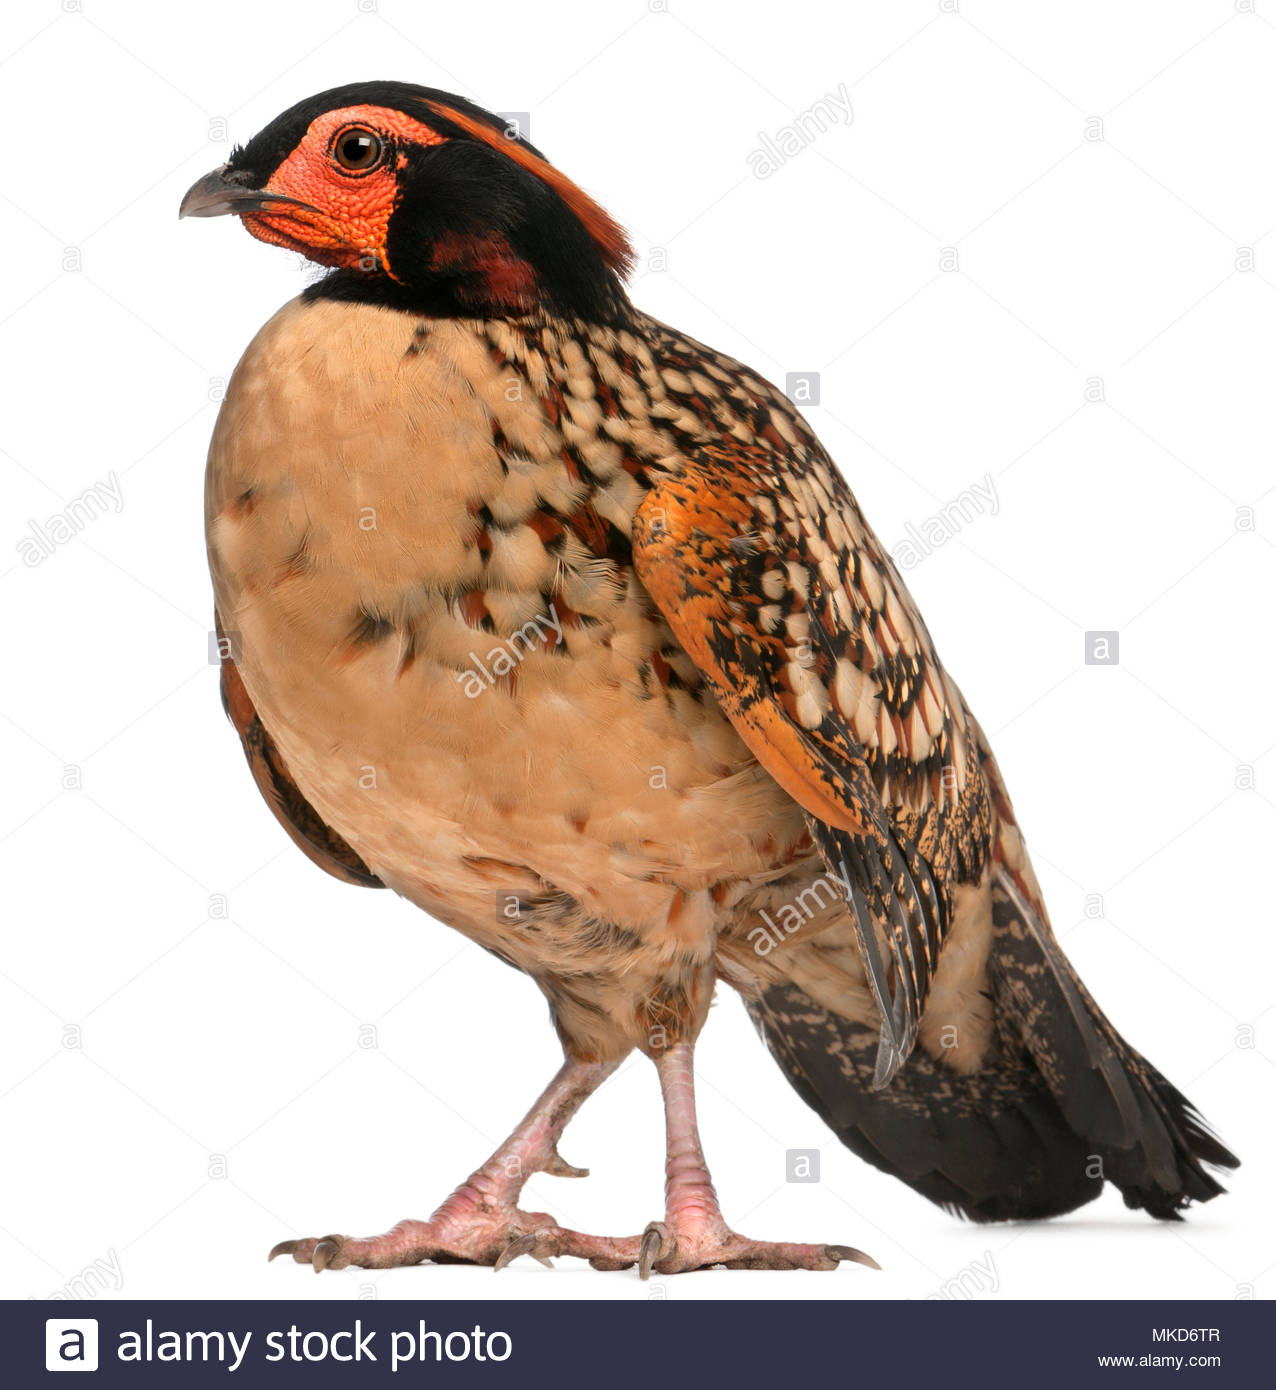 Cabot's Tragopan, (Tragopan caboti), standing in front of white background Mulhouse Zoological and Botanical Park, France - Stock Image